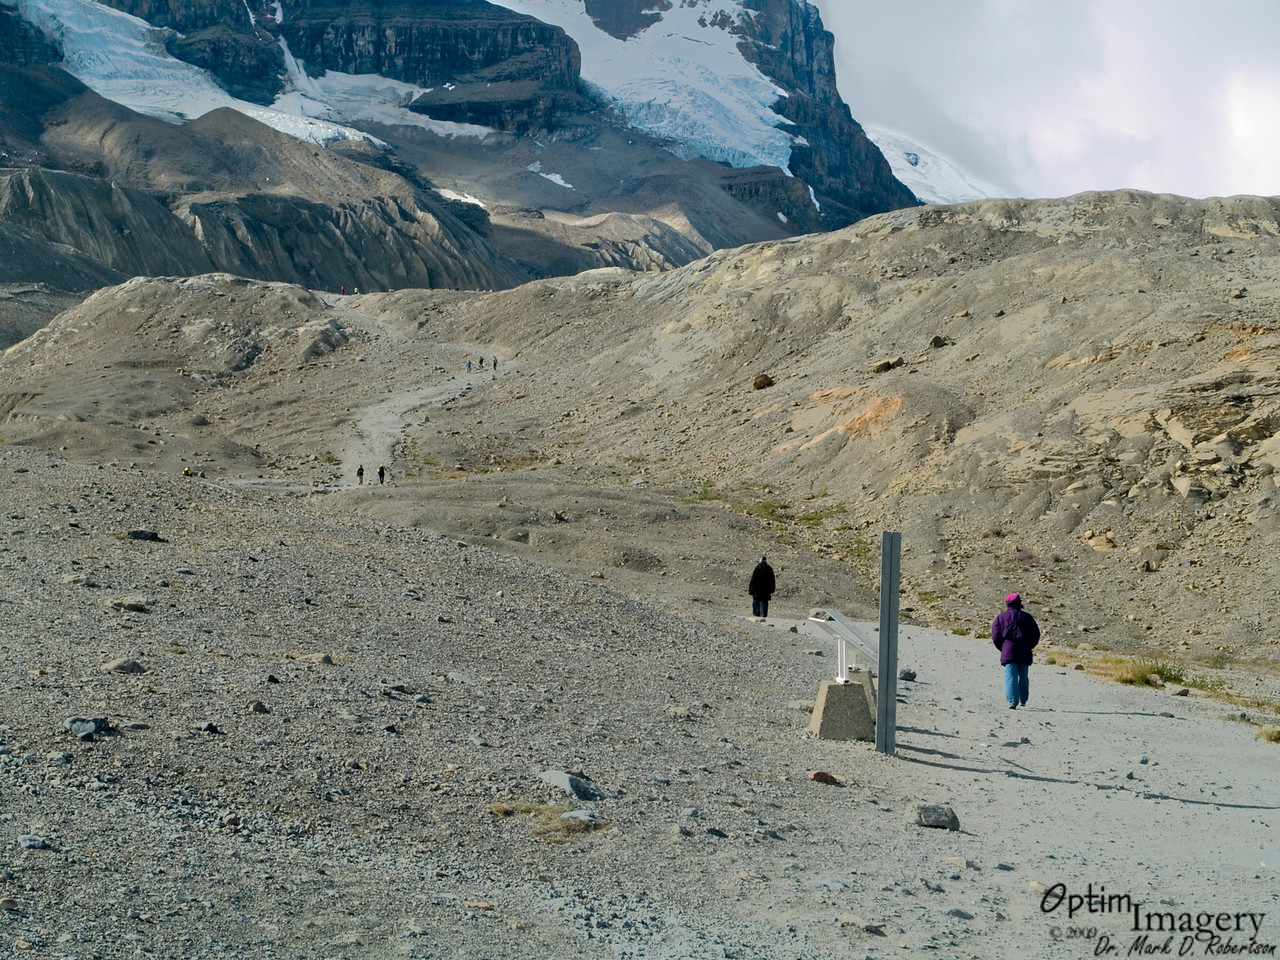 NOW we are at the mighty Athabasca Glacier.  Well, you won't see the glacier until we get to the top of this ridge, actually.  When Bev and I were there 30 years ago, the glacier was just to the bottom of the ridge you see here.